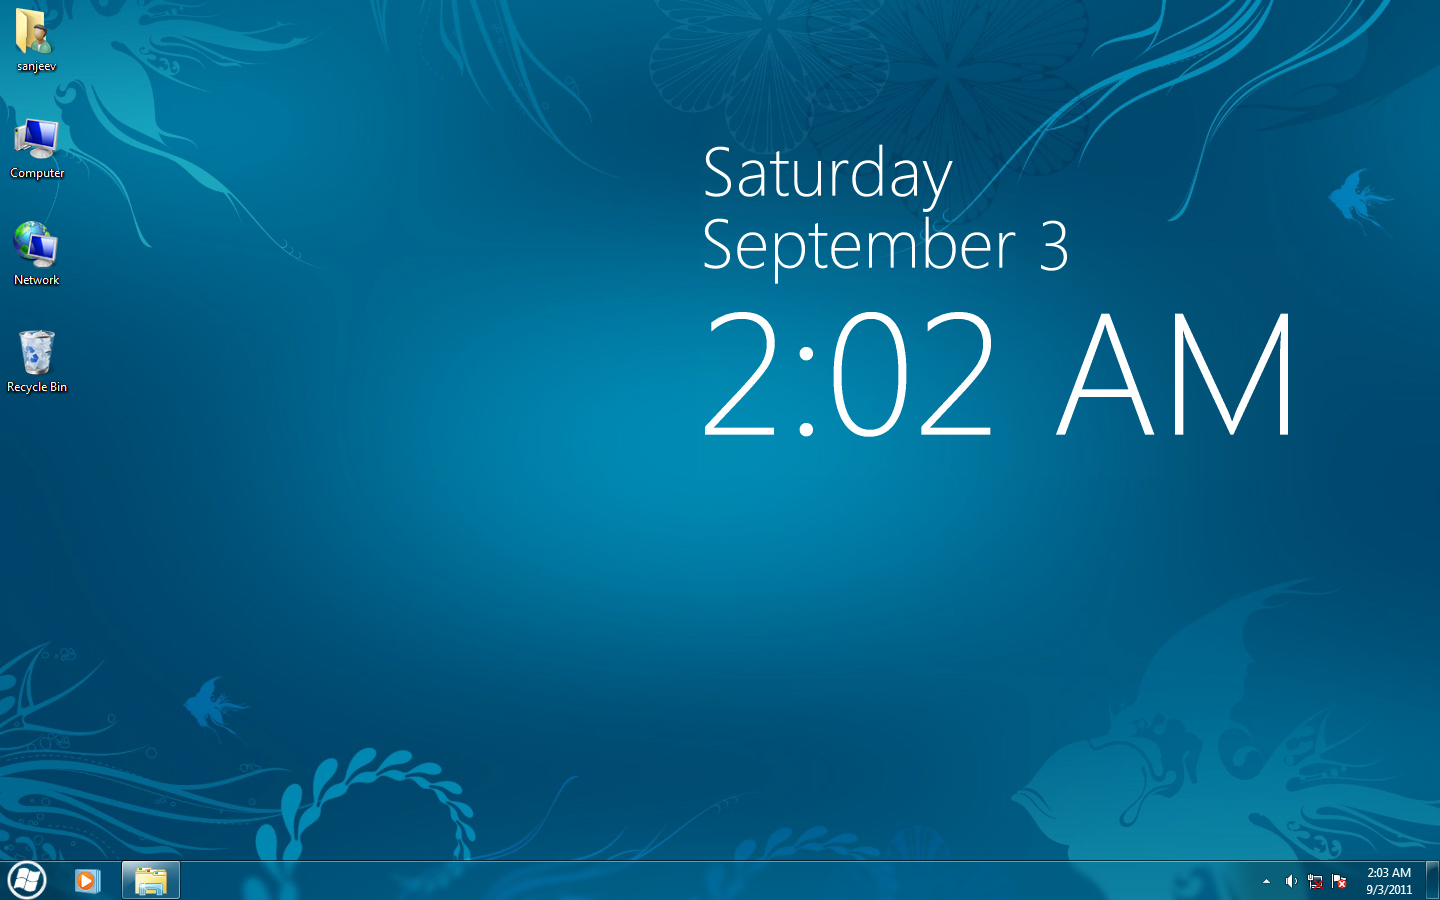 50+] Clock Live Wallpaper Windows 10 on